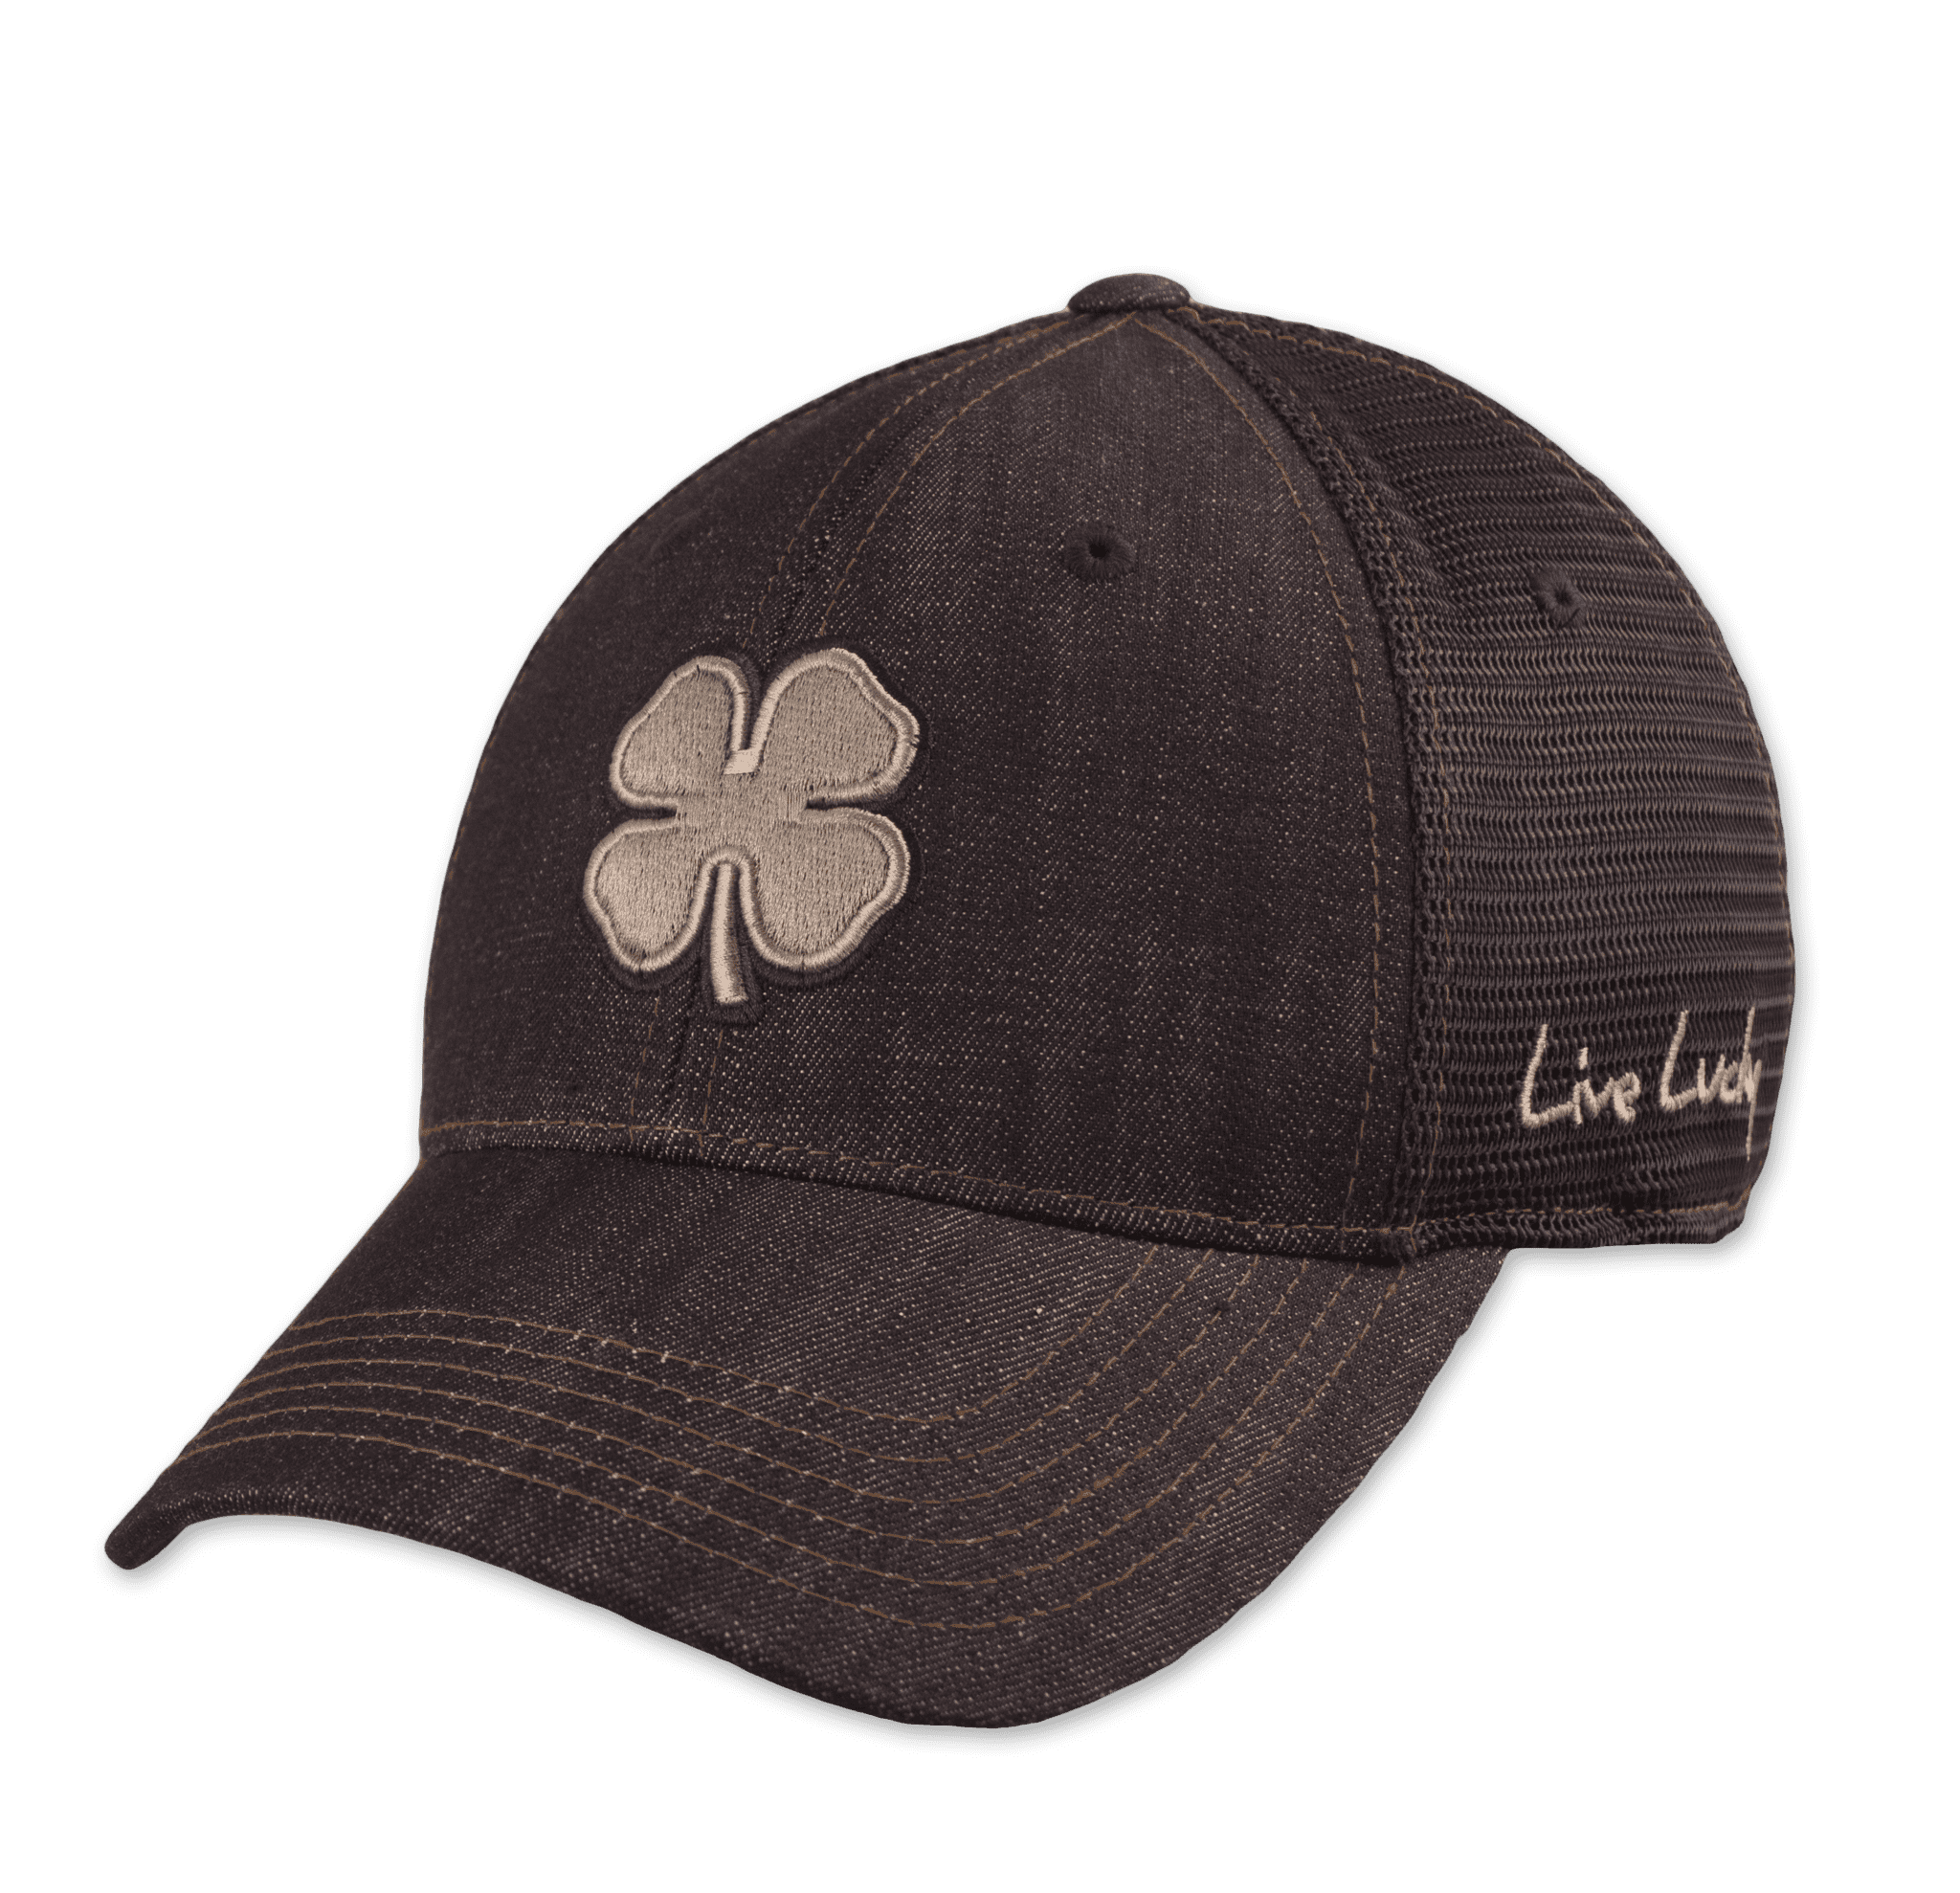 Black Clover Denim Baseball Cap front view